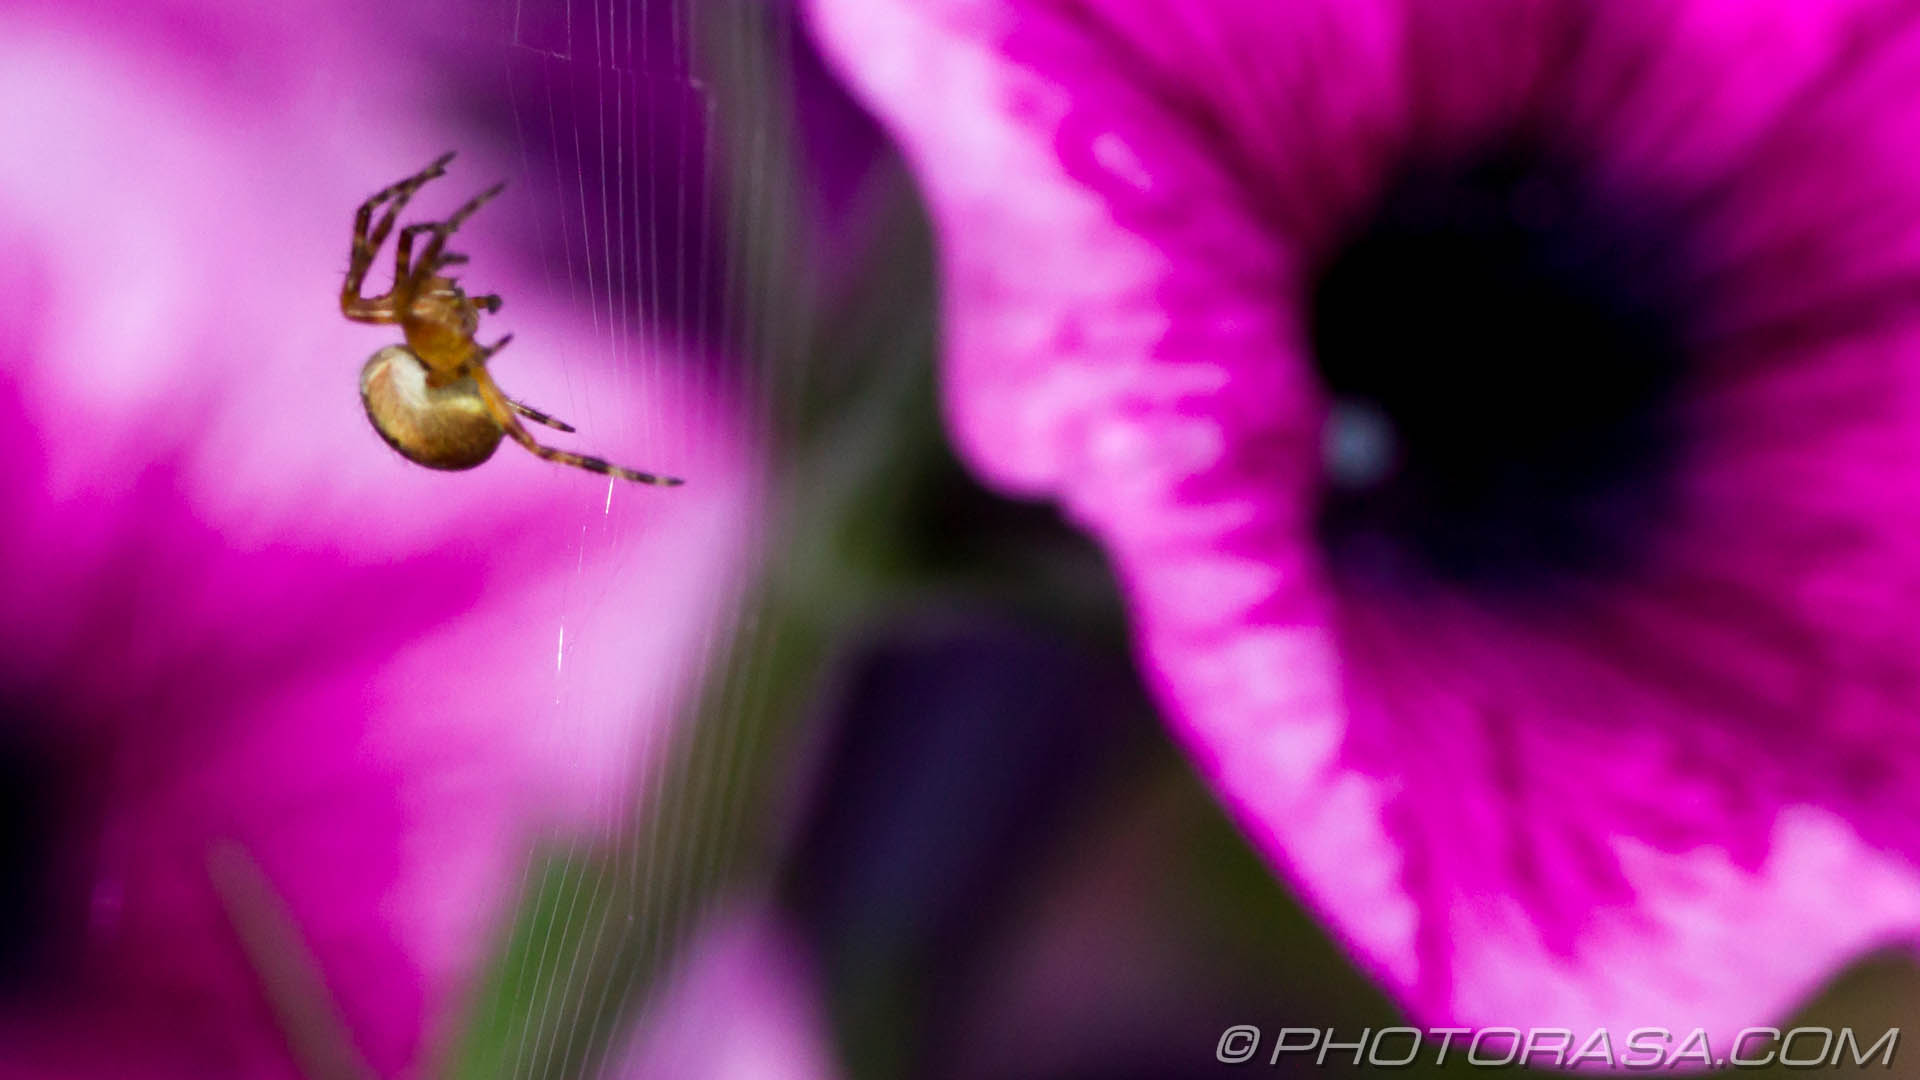 http://photorasa.com/spider-petunias/spider-in-purple-petunias/